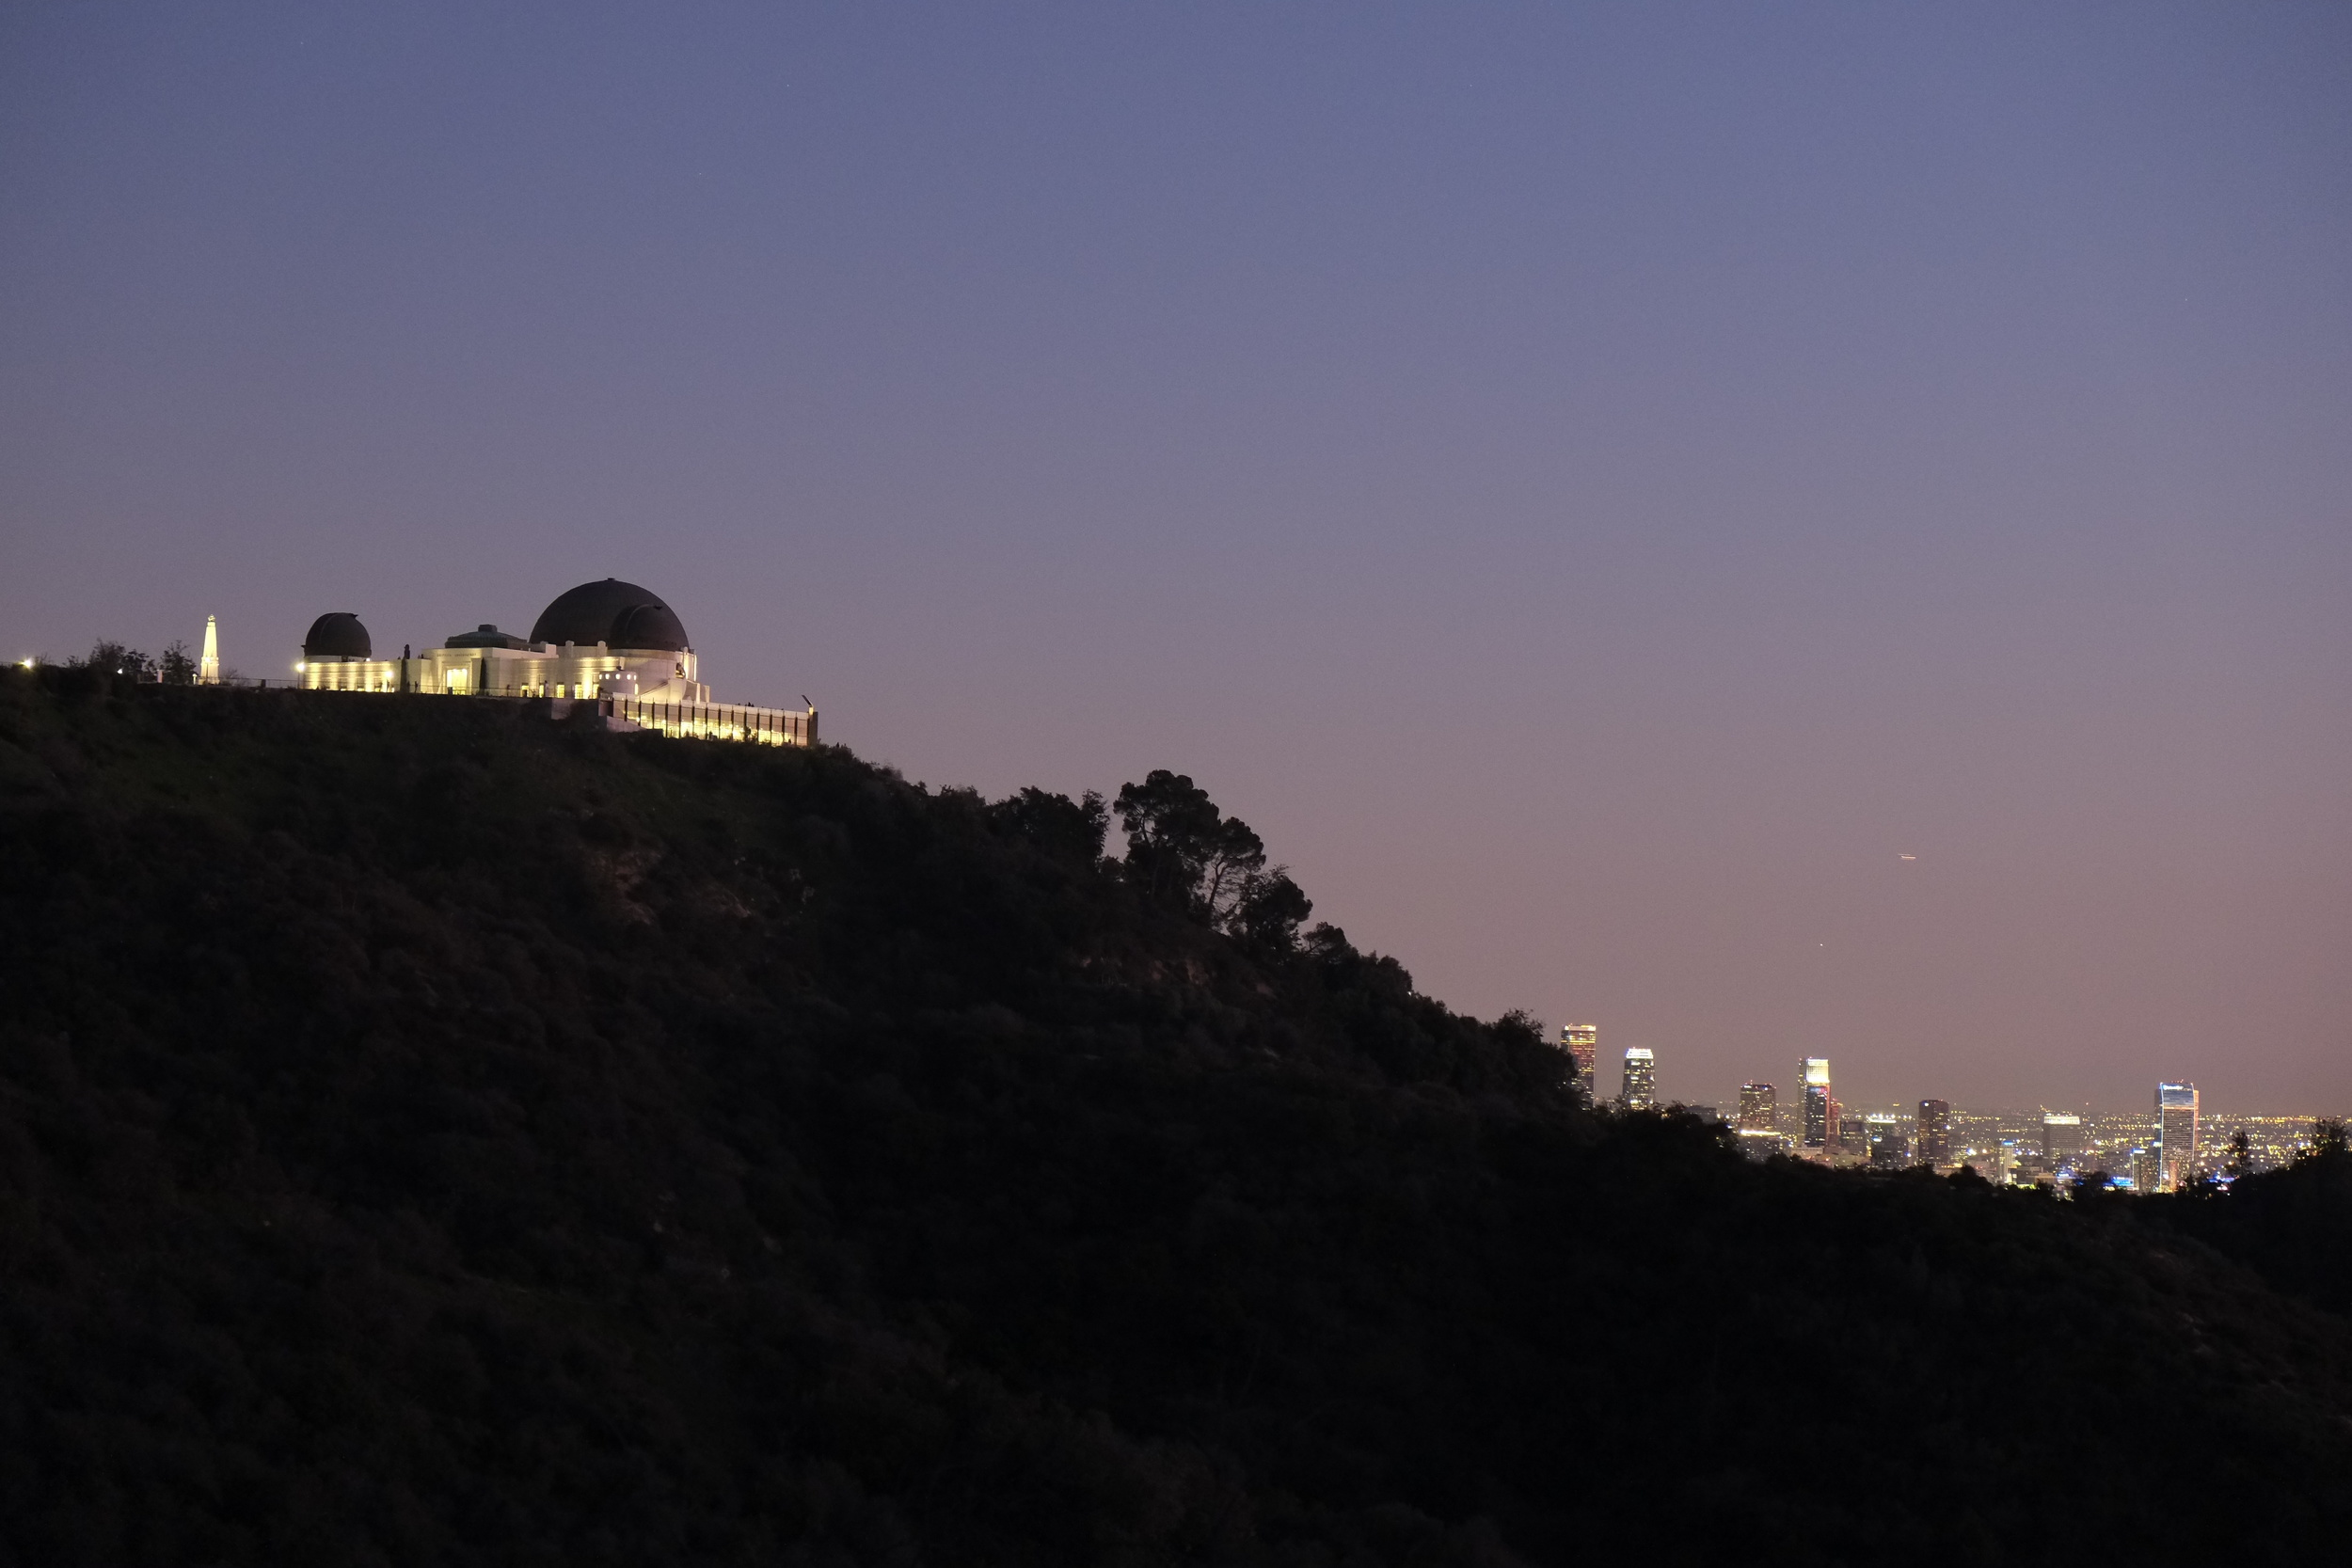 Griffith Observatory, Jan 12, 2013  Fuji X-E1, XF 18-55 @ 55mm  f/4 @ 0.4 Sec, 1600 ISO